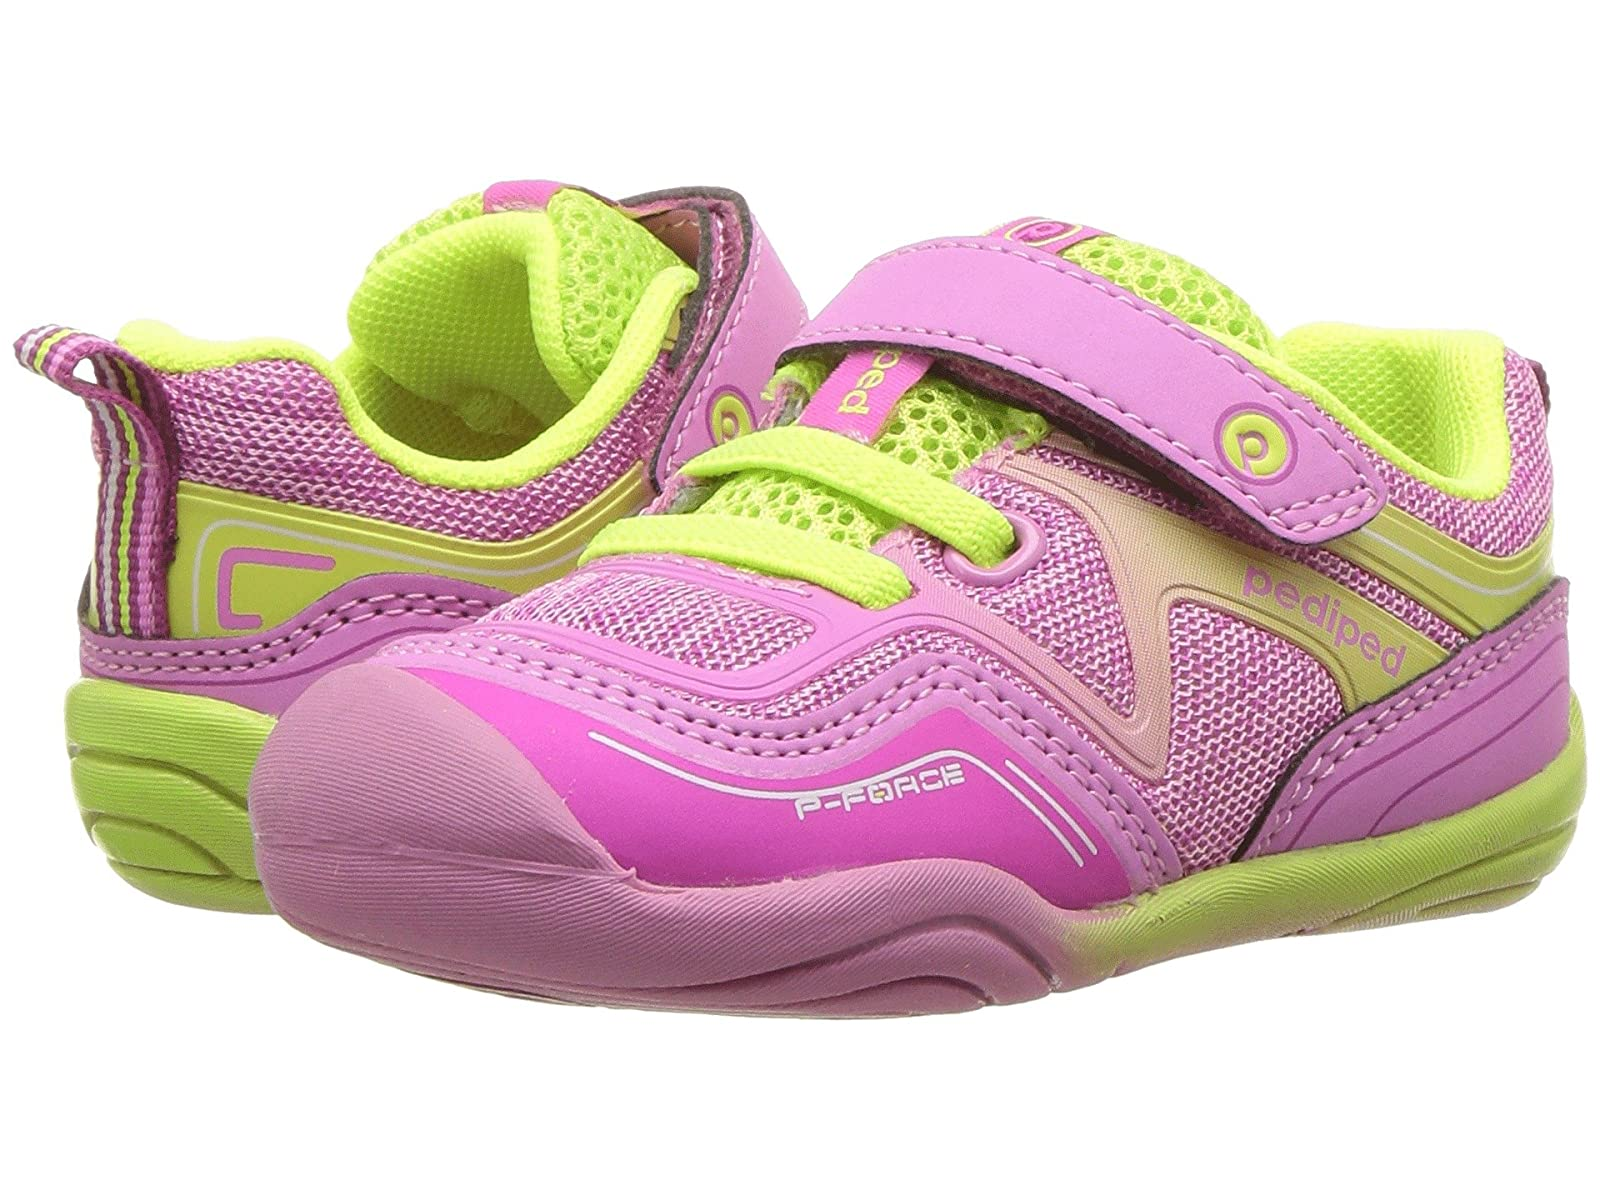 pediped Force Grip 'n' Go (Toddler)Atmospheric grades have affordable shoes